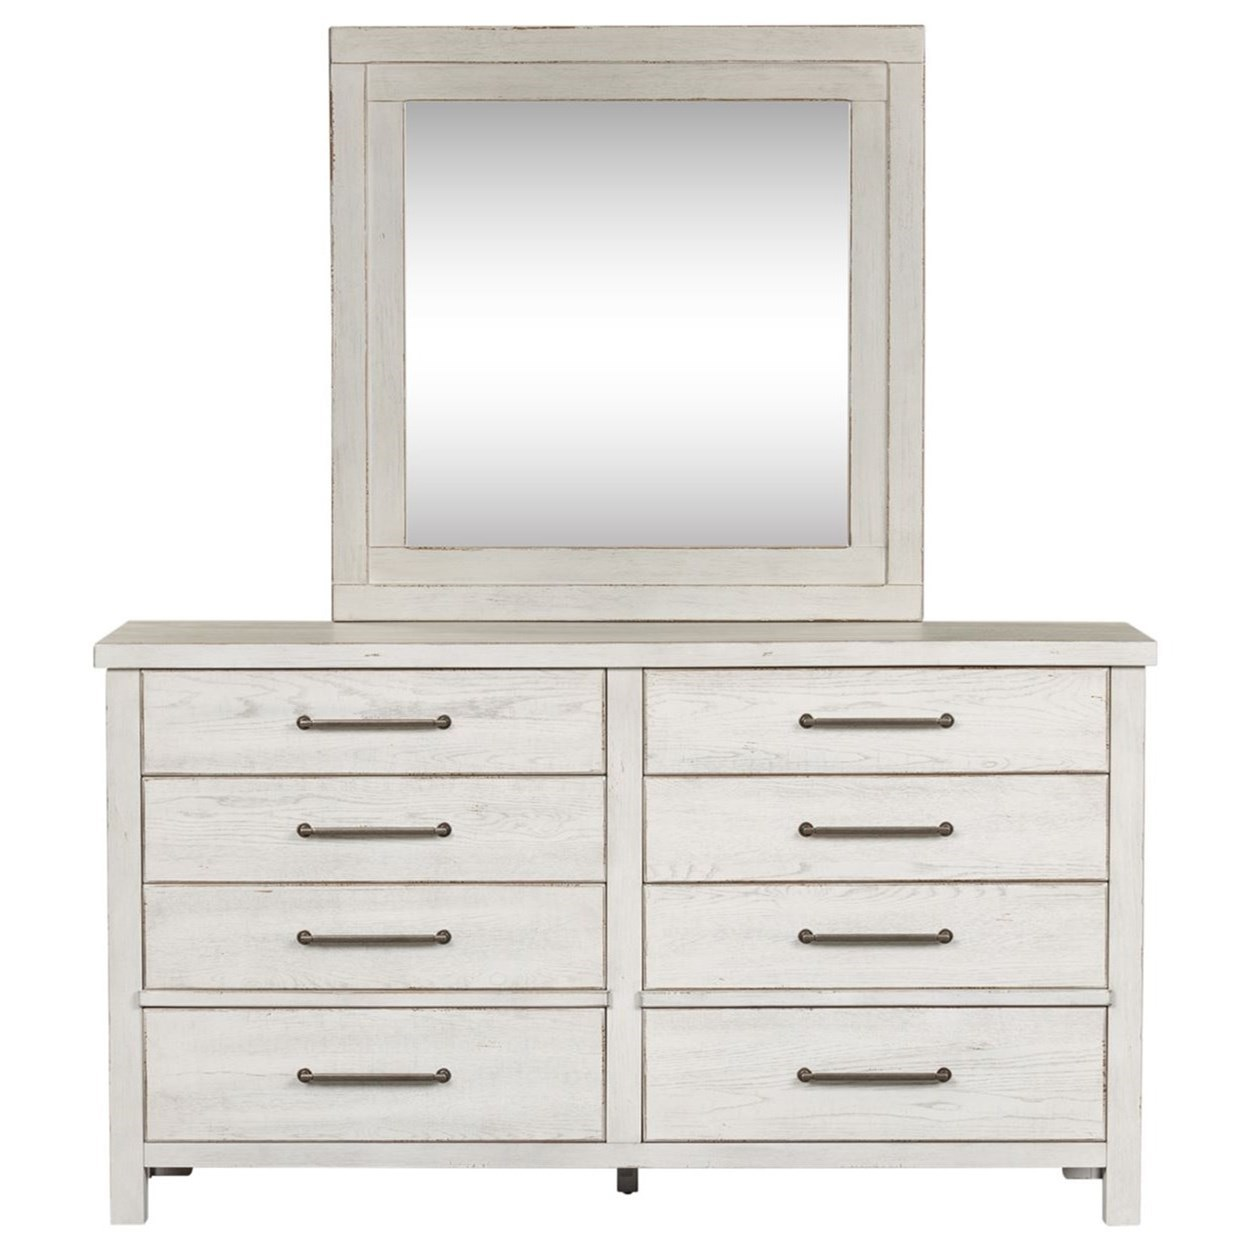 Modern Farmhouse Dresser and Mirror Set by Libby at Walker's Furniture